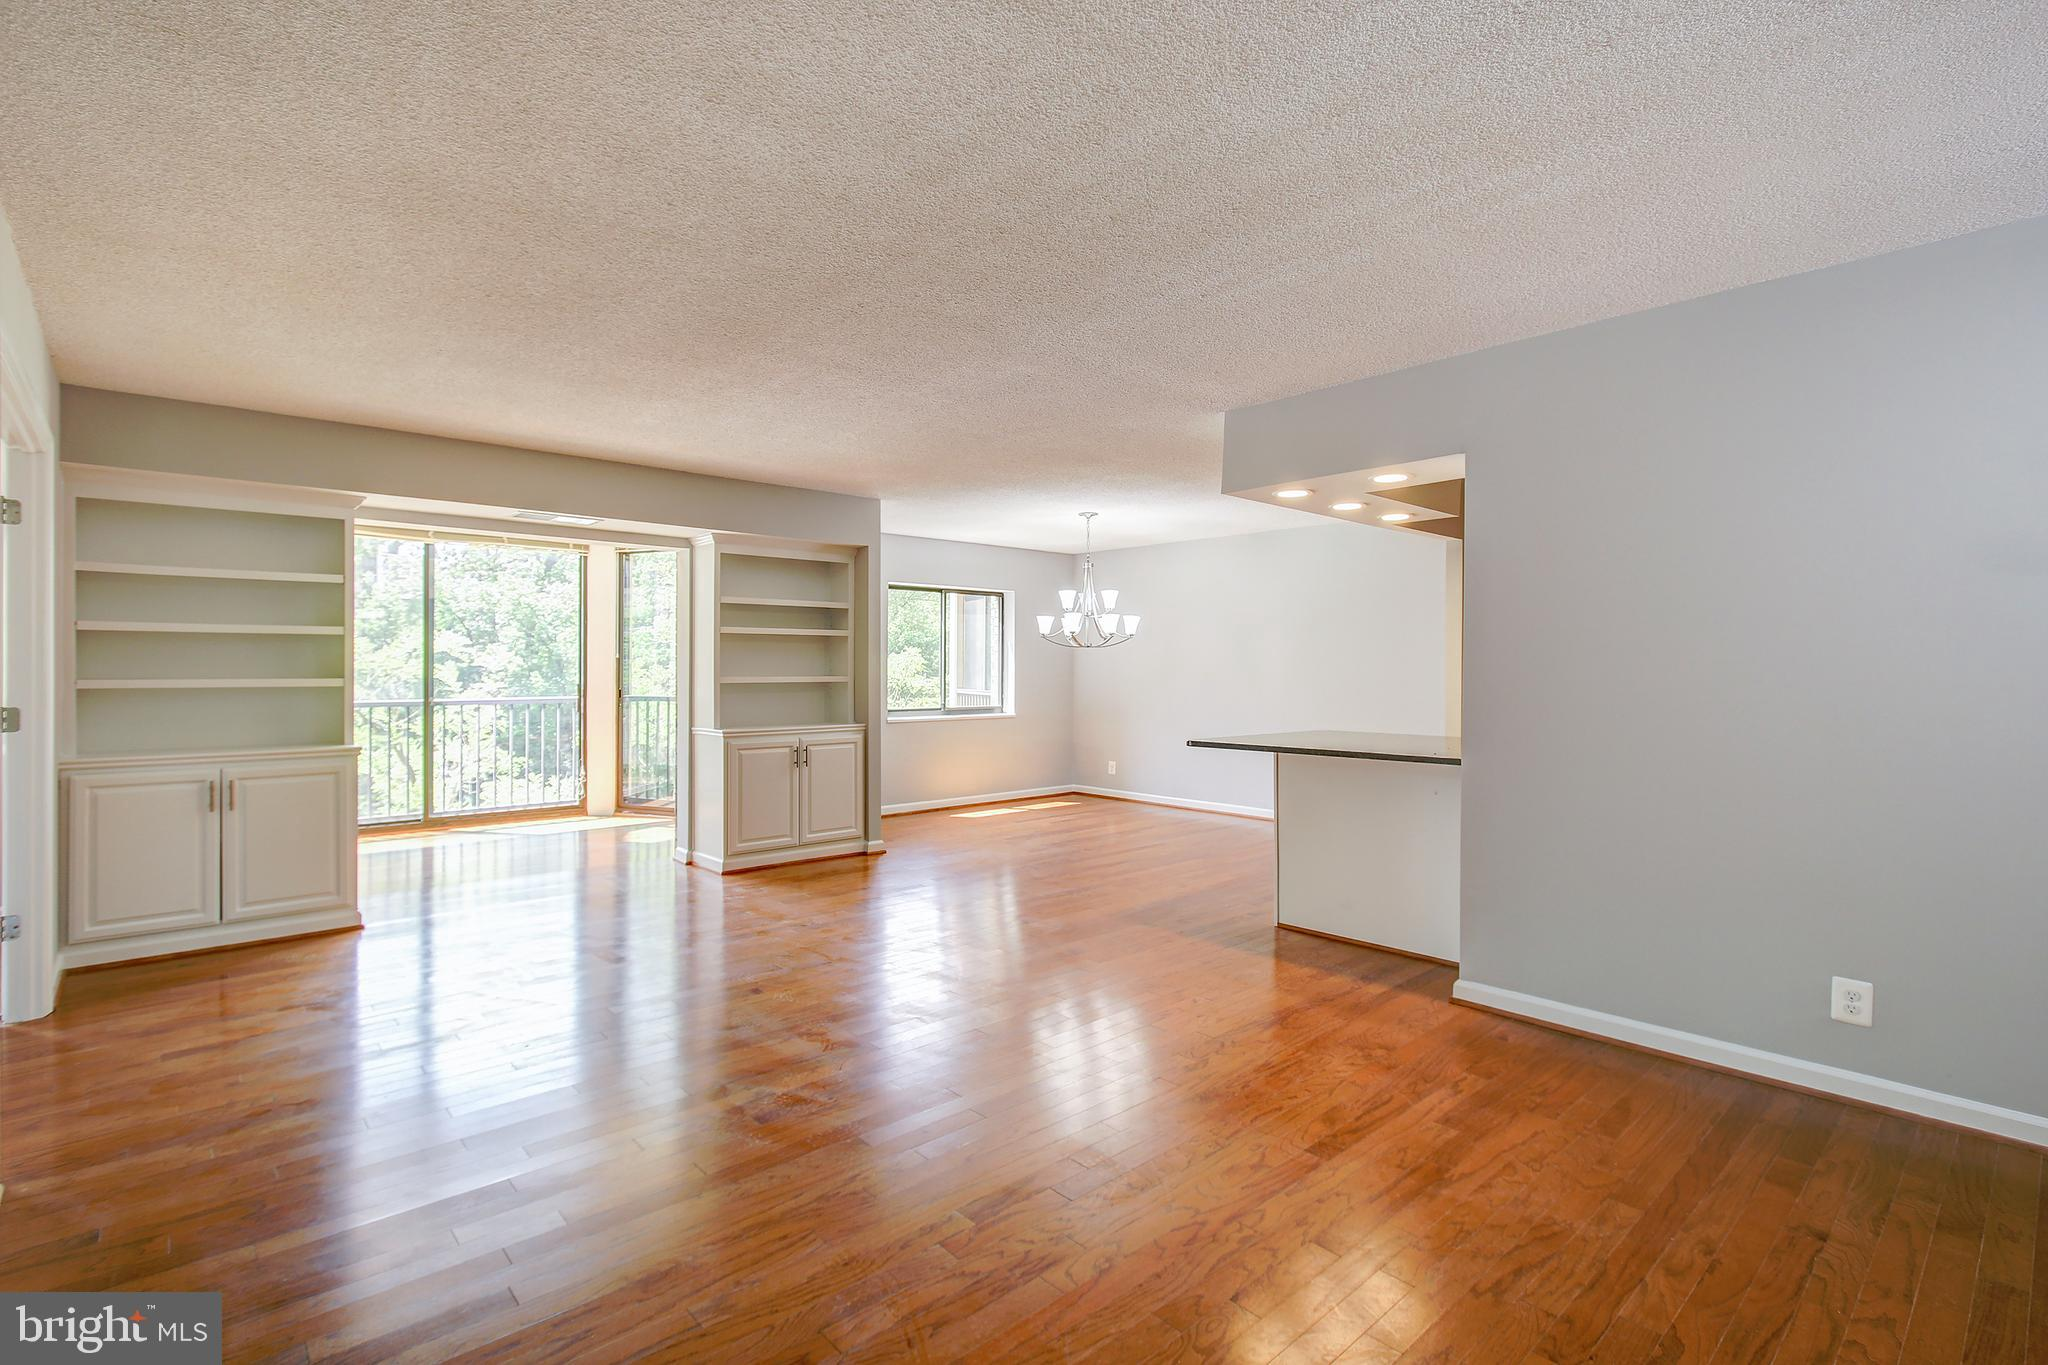 """***** NEW LISTING! ***** Go see the rest, then come see the best, -- it's like moving into a """"BRAND NEW HOME""""! This beautiful Montebello home is in picture-perfect MOVE-IN CONDITION, -- ready for today's value conscious home buyer. Beautiful 2 Bedroom, 2 Full Baths home with 1,305 square feet of living space with OPEN KITCHEN concept! NEWLY RENOVATED THROUGHOUT, -- including ALL """"BRAND NEW"""" Kitchen, Baths, and Hardwood Flooring! All very UPSCALE/HIGH-END RENOVATIONS, -- including granite counter-tops, stainless steel appliances, and """"re-configured"""" Master Bedroom Bath. French doors pass-through from living room to 2nd Bedroom or Den/Study. Enclosed SUNROOM/SCREENED-PORCH has been opened to living room for your year-round enjoyment. GARAGE PARKING SPACE #94 conveying with premium location near elevator. Live at """"Award Winning"""" Montebello, -- the area's premier luxury condominium!   ***** SEE VIRTUAL TOUR LINK for """"Interactive"""" Floor Plan Tour and HD Video Tour! ***** IMPORTANT: Under """"Documents"""" icon, see detailed """"List of Features and Improvements"""", Property Brochure, and Floor Plan, -- or have your agent forward to you. *****"""